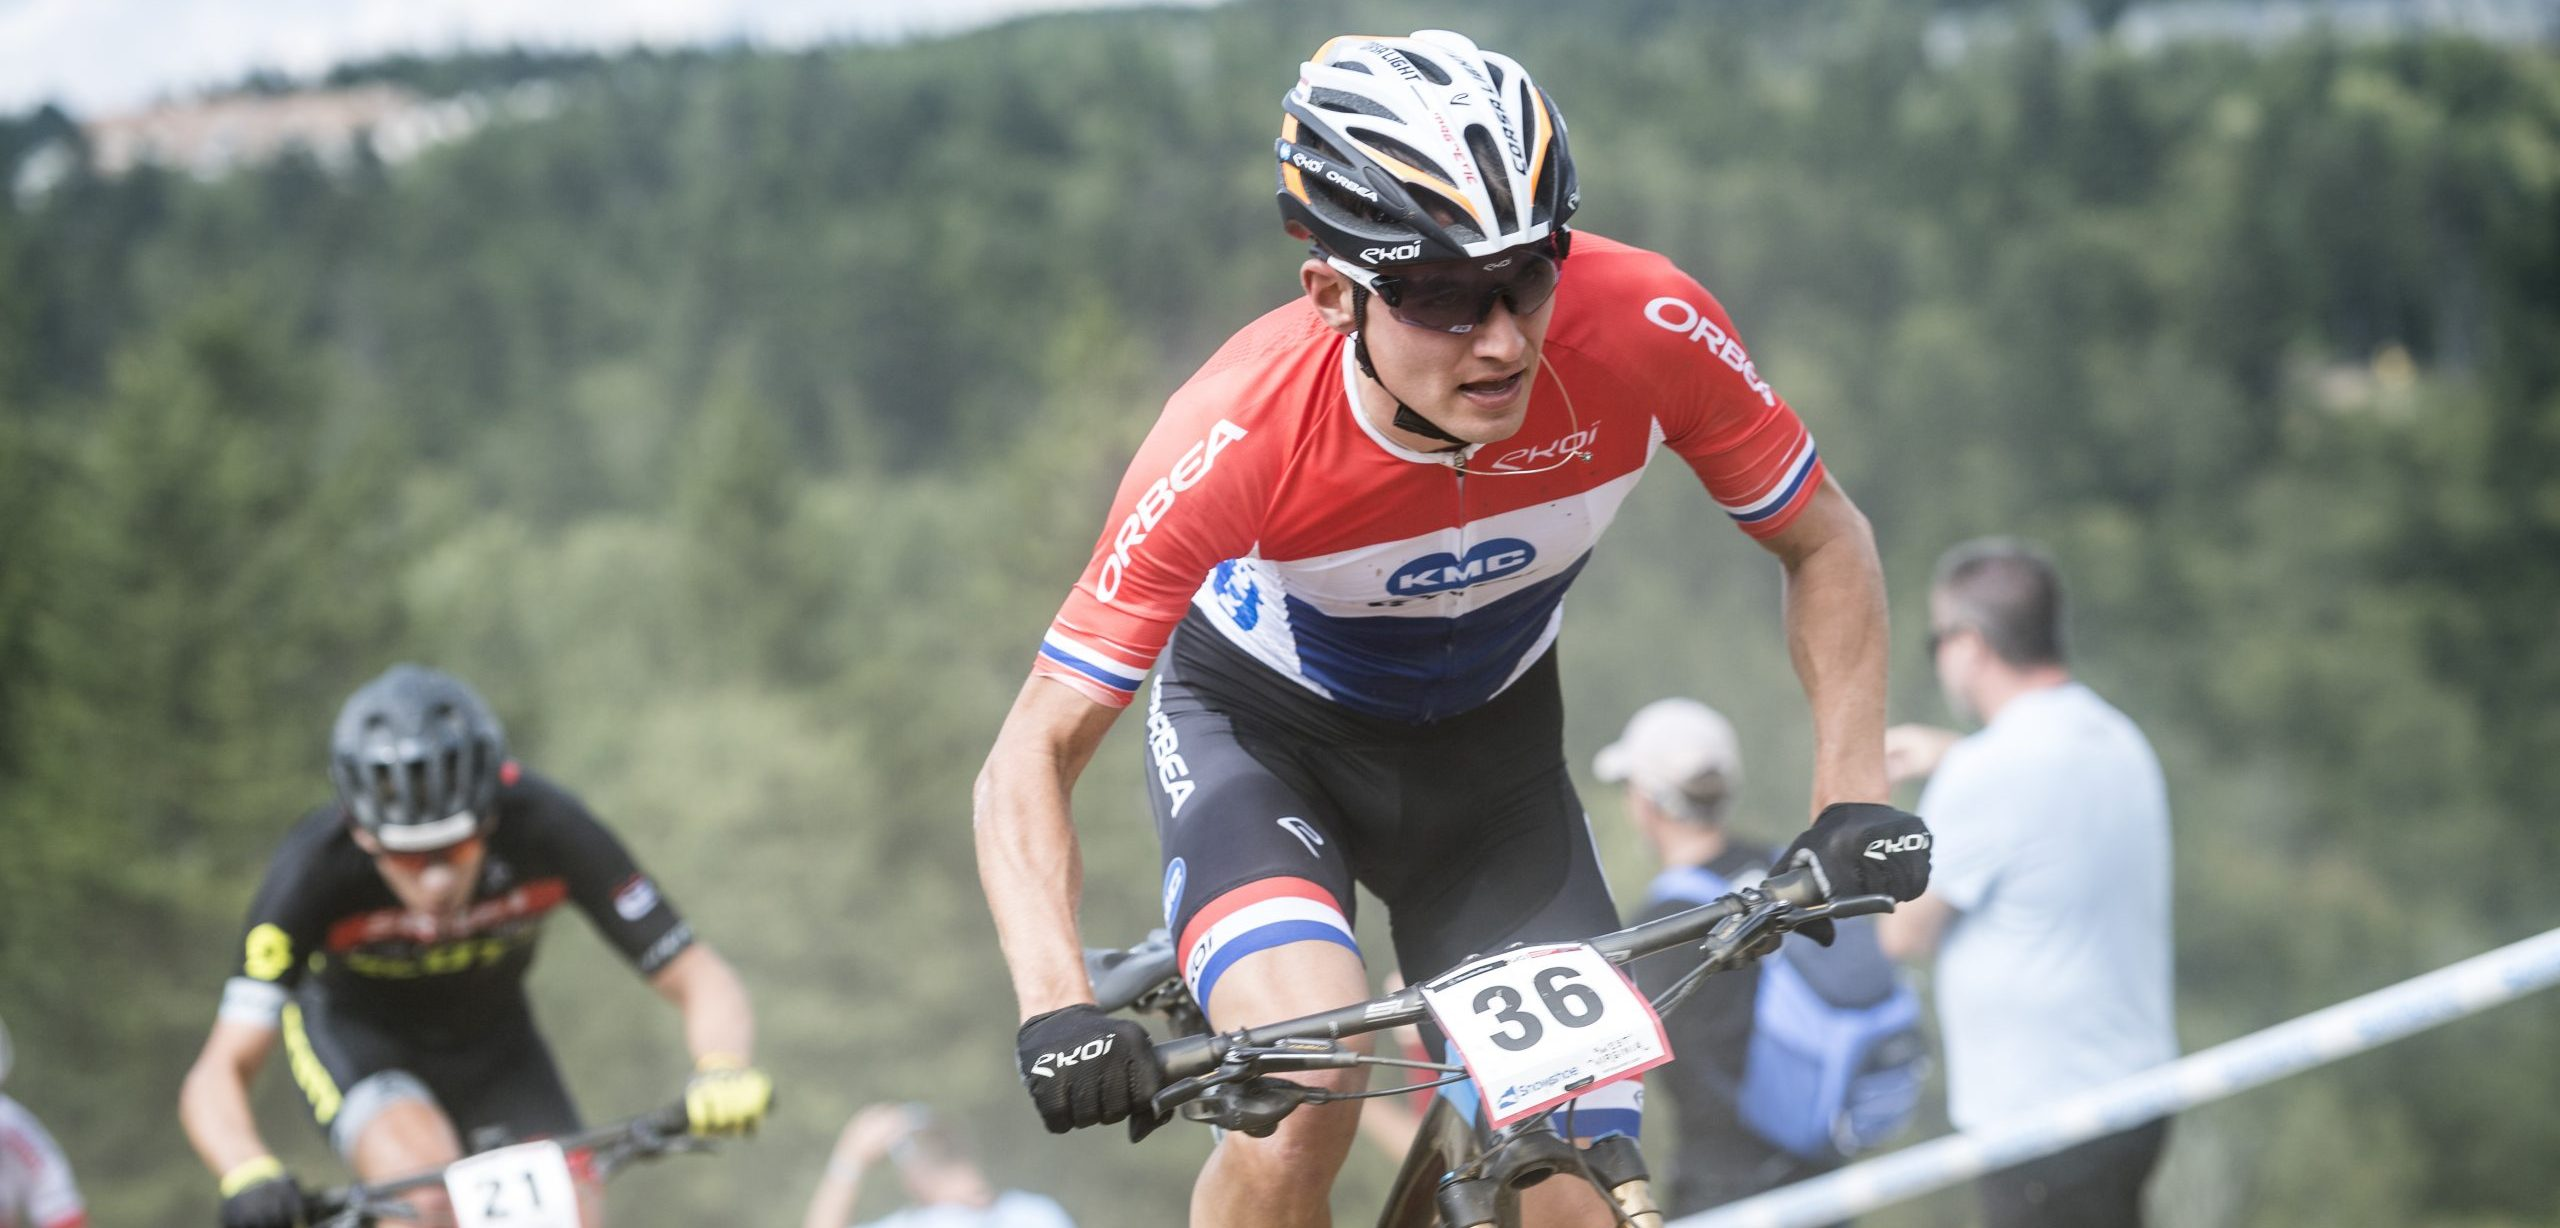 Follow the MTB Short Track races at Snowshoe 2021 here